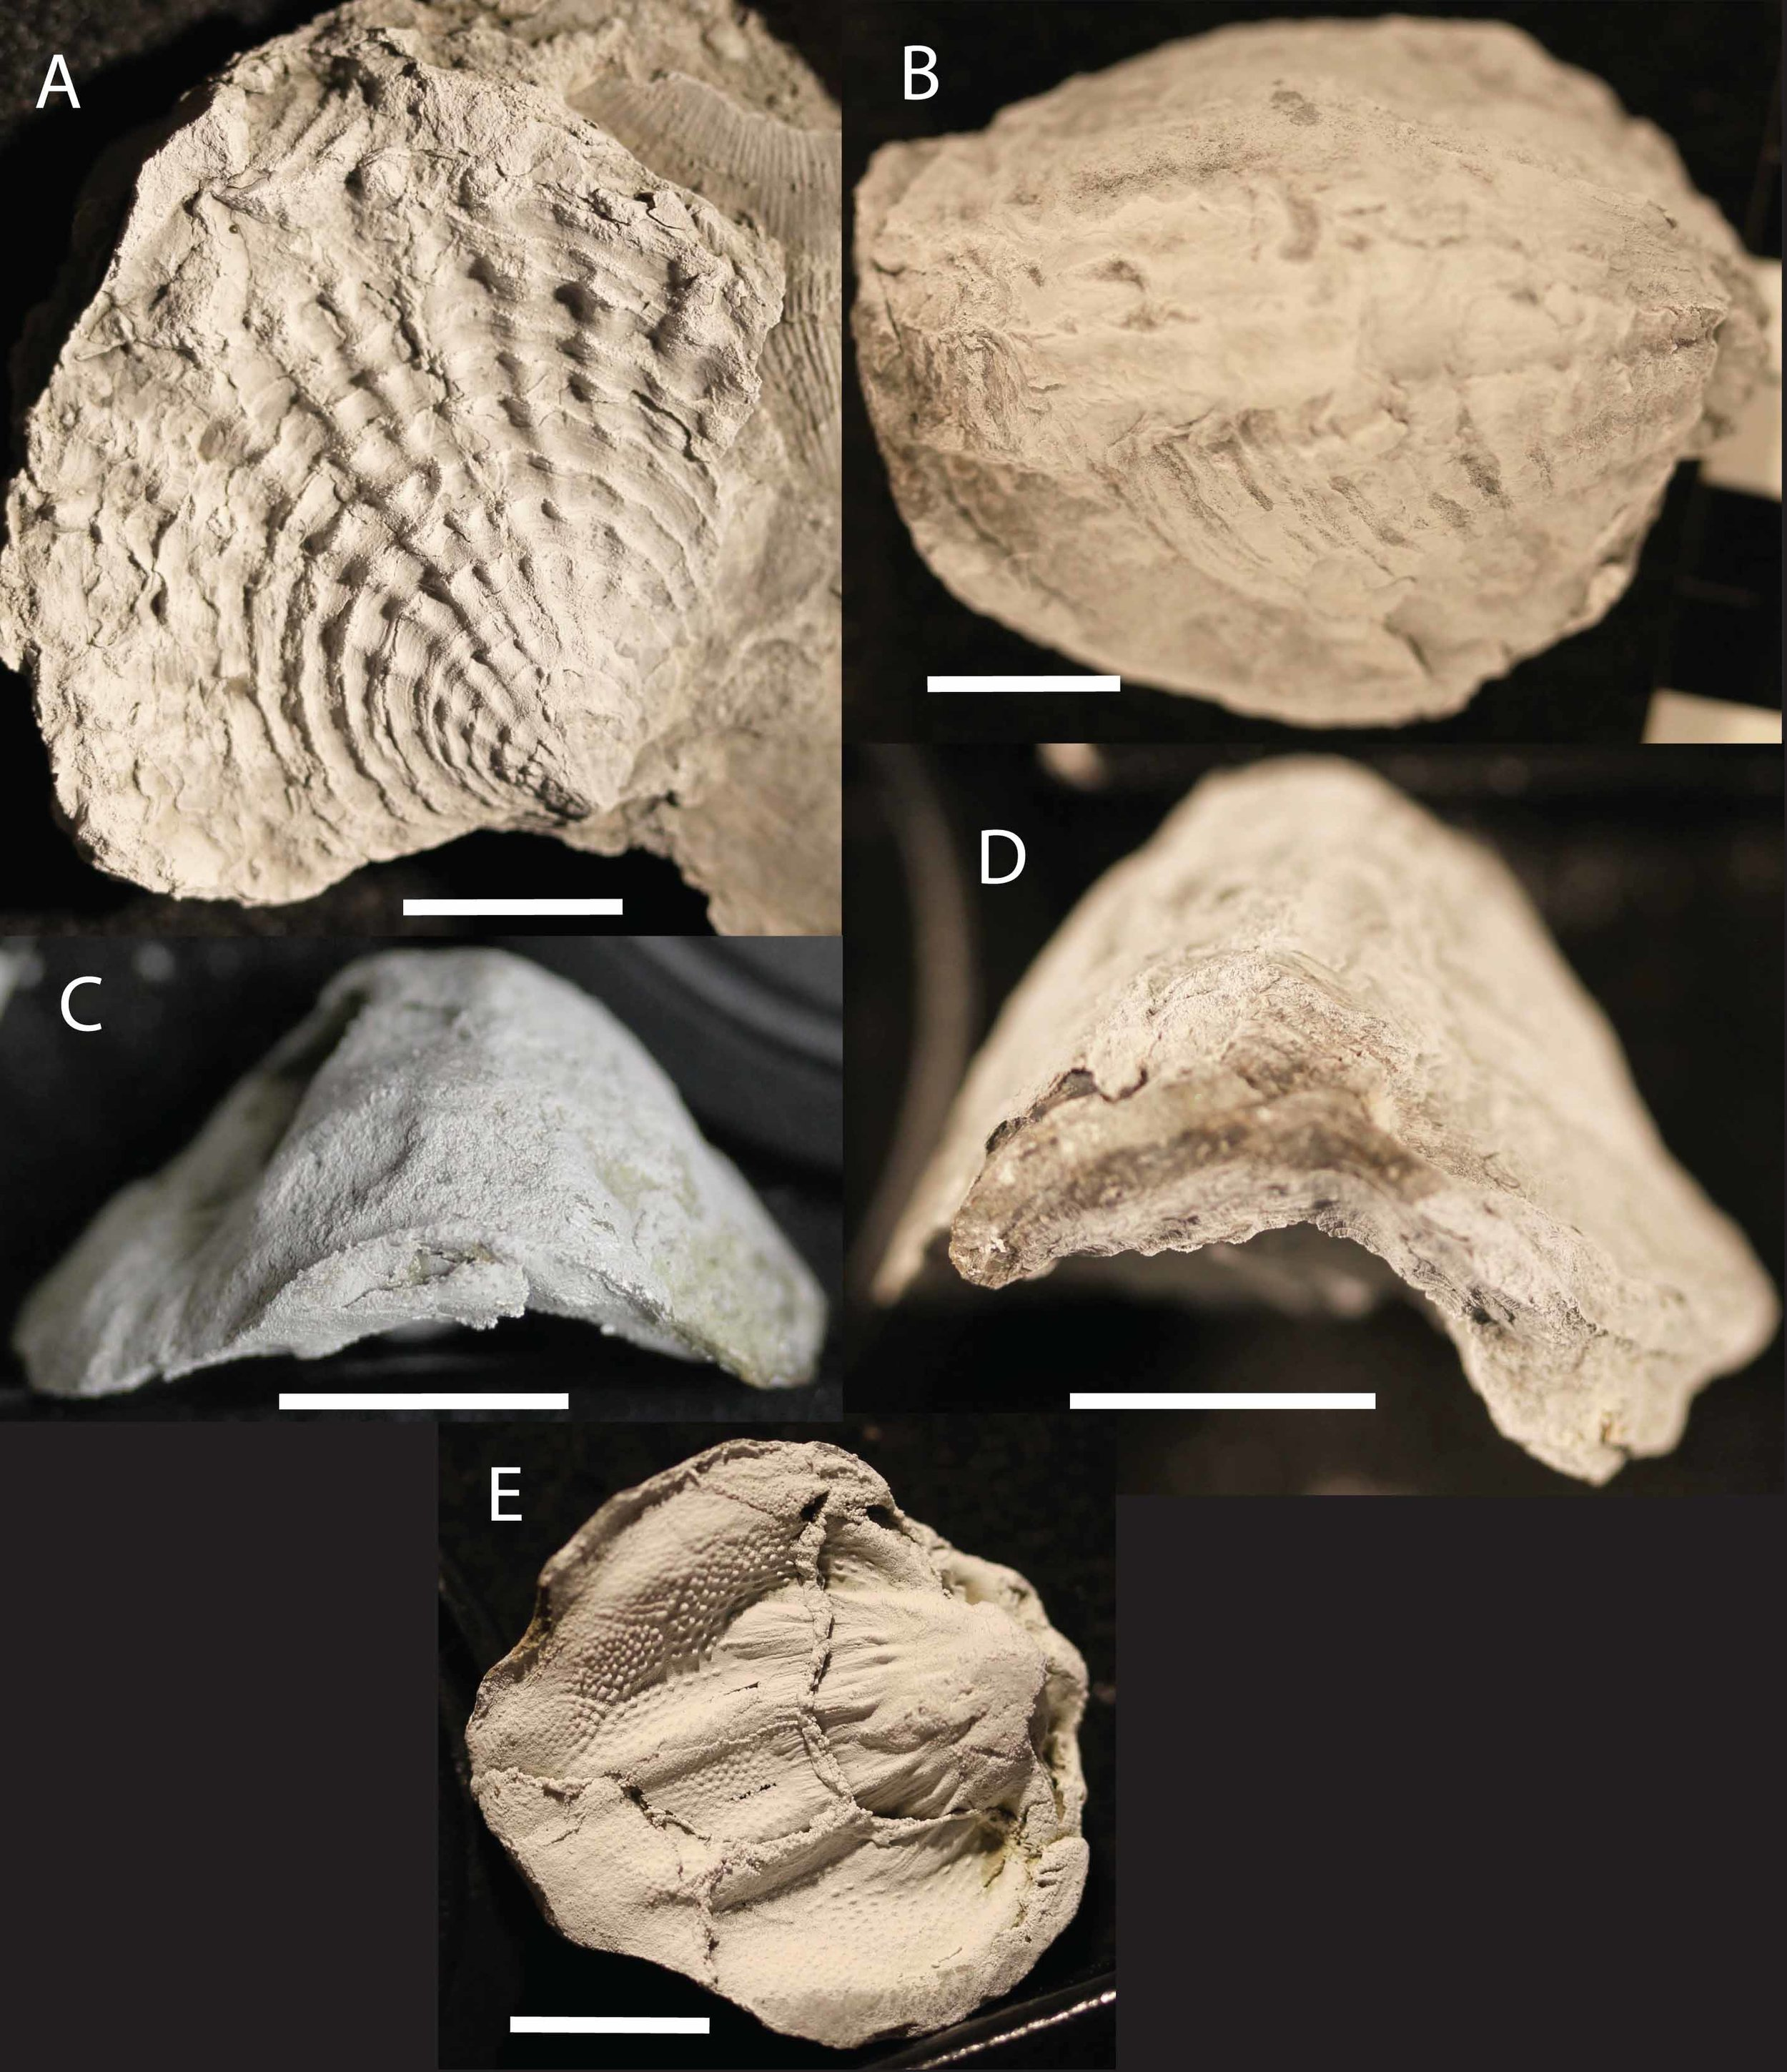 Figure 6.Various specimens of  Spinatrypa  sp. from the Upper Devonian. The Atrypids are great indicators of the Lower and Upper Kellwasser event with all Atrypids going extinct during the latter.These specimens are currently under taxonomic revision.